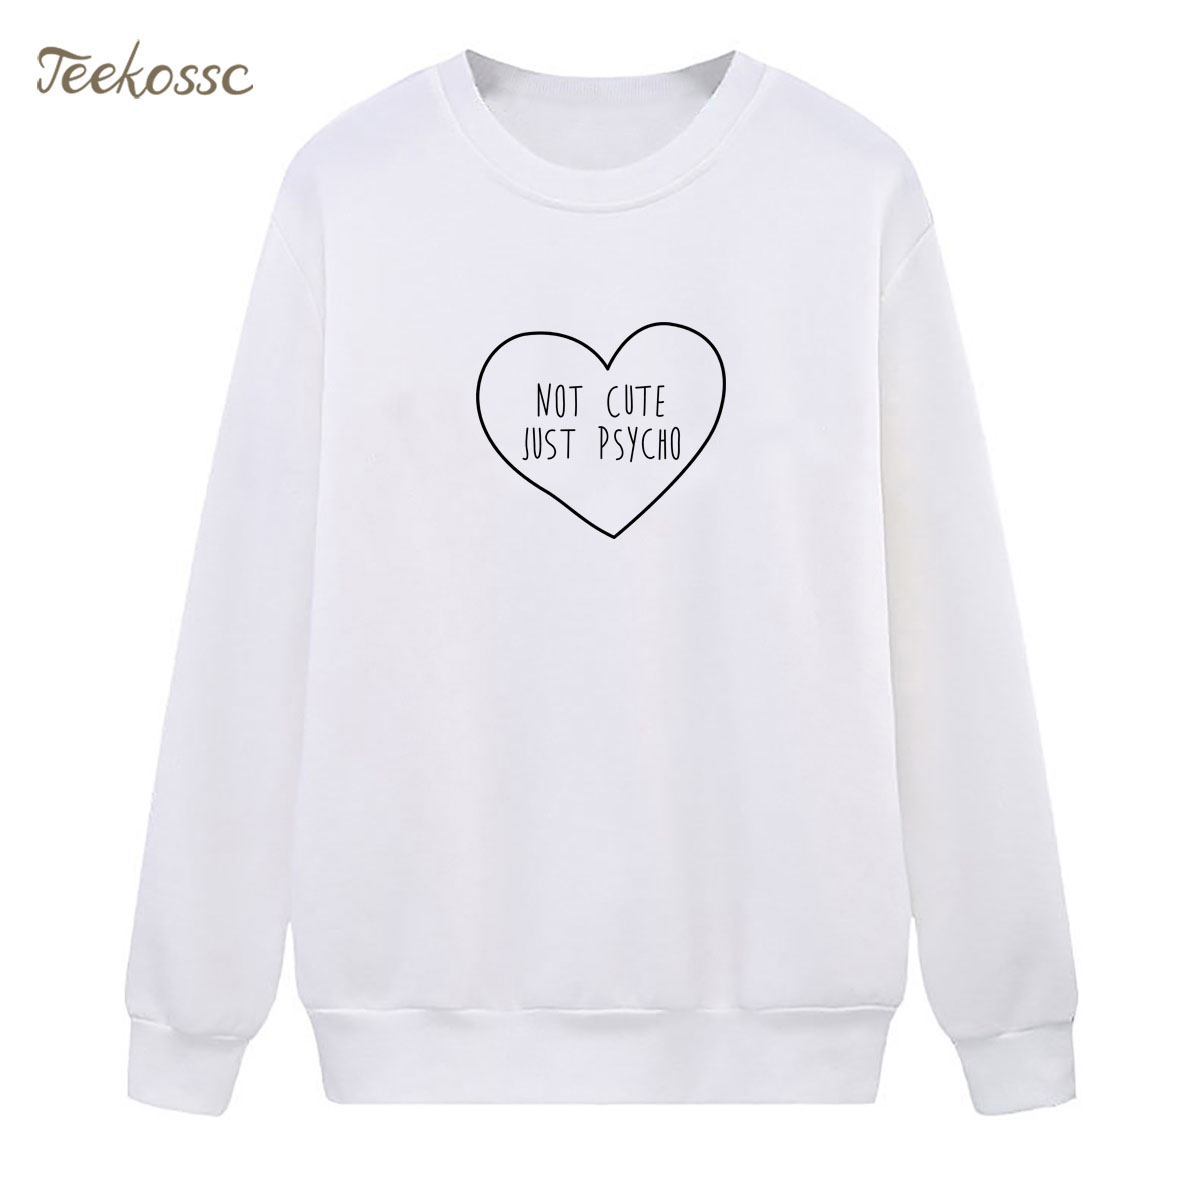 NOT CUTE JUST PSYCHO Sweatshirt Love Hoodie 2018 New Brand Winter Autumn Women Lasdies Pullover Fleece Loose White Streetwear